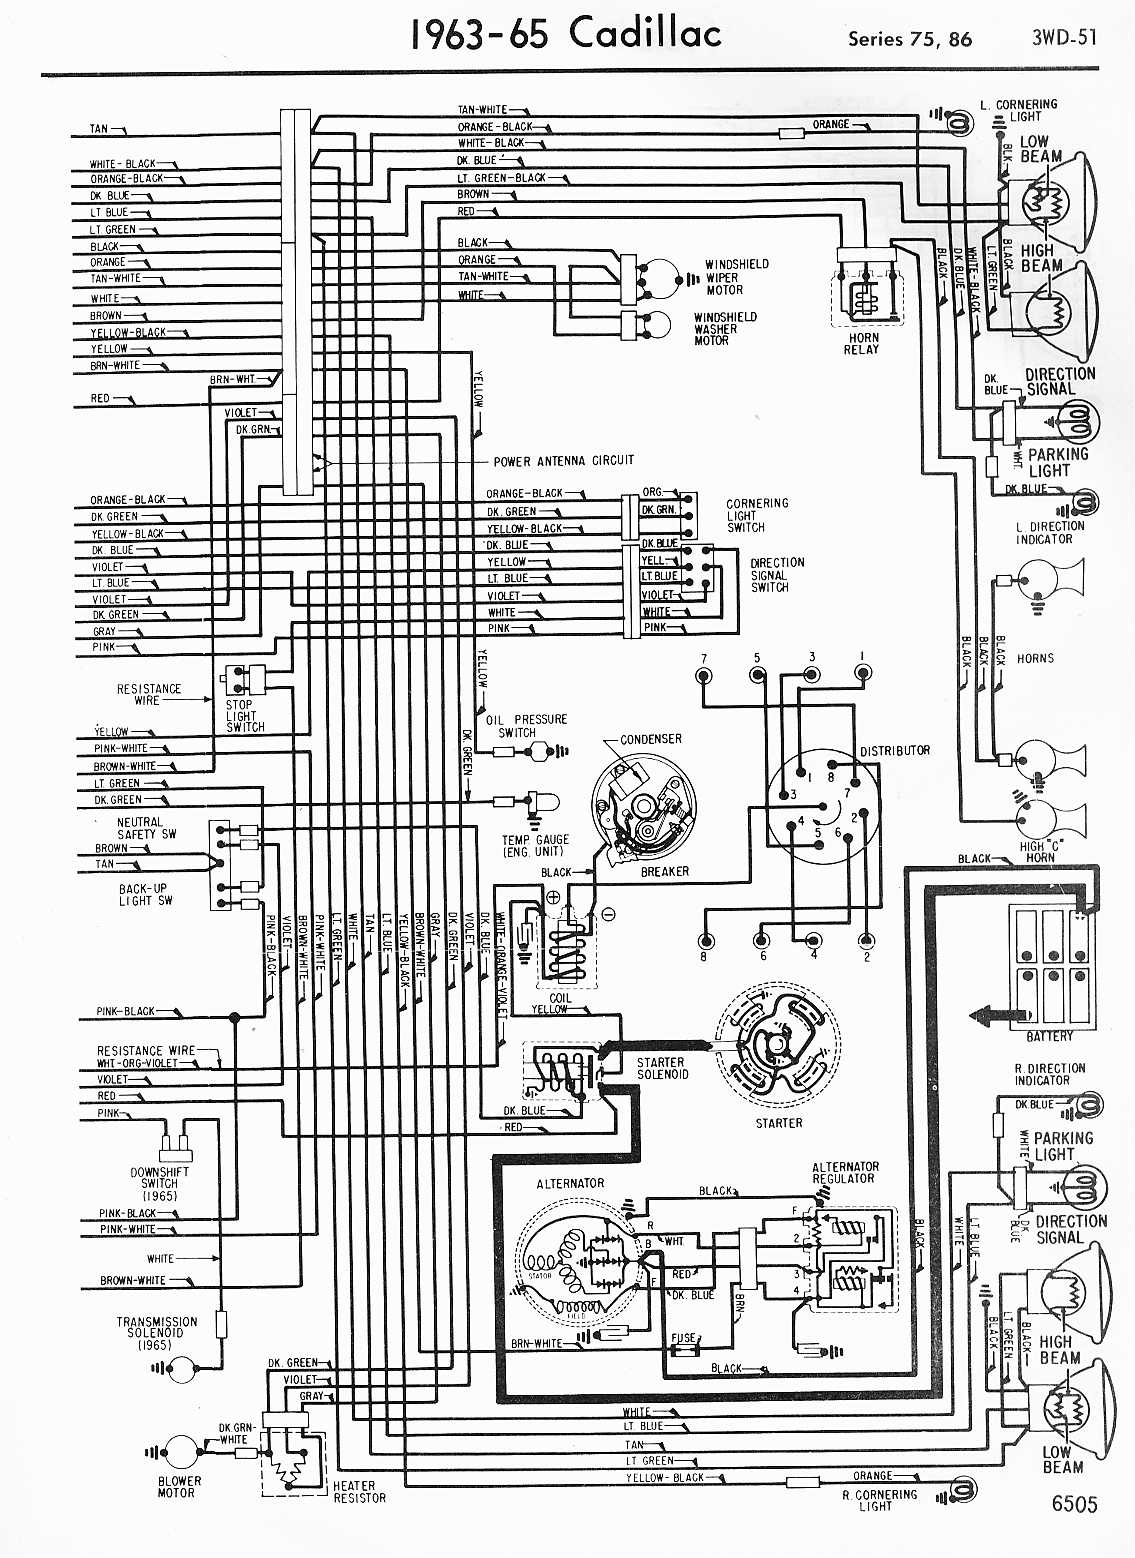 Cadillac Wiring Schematic Just Wiring Diagram